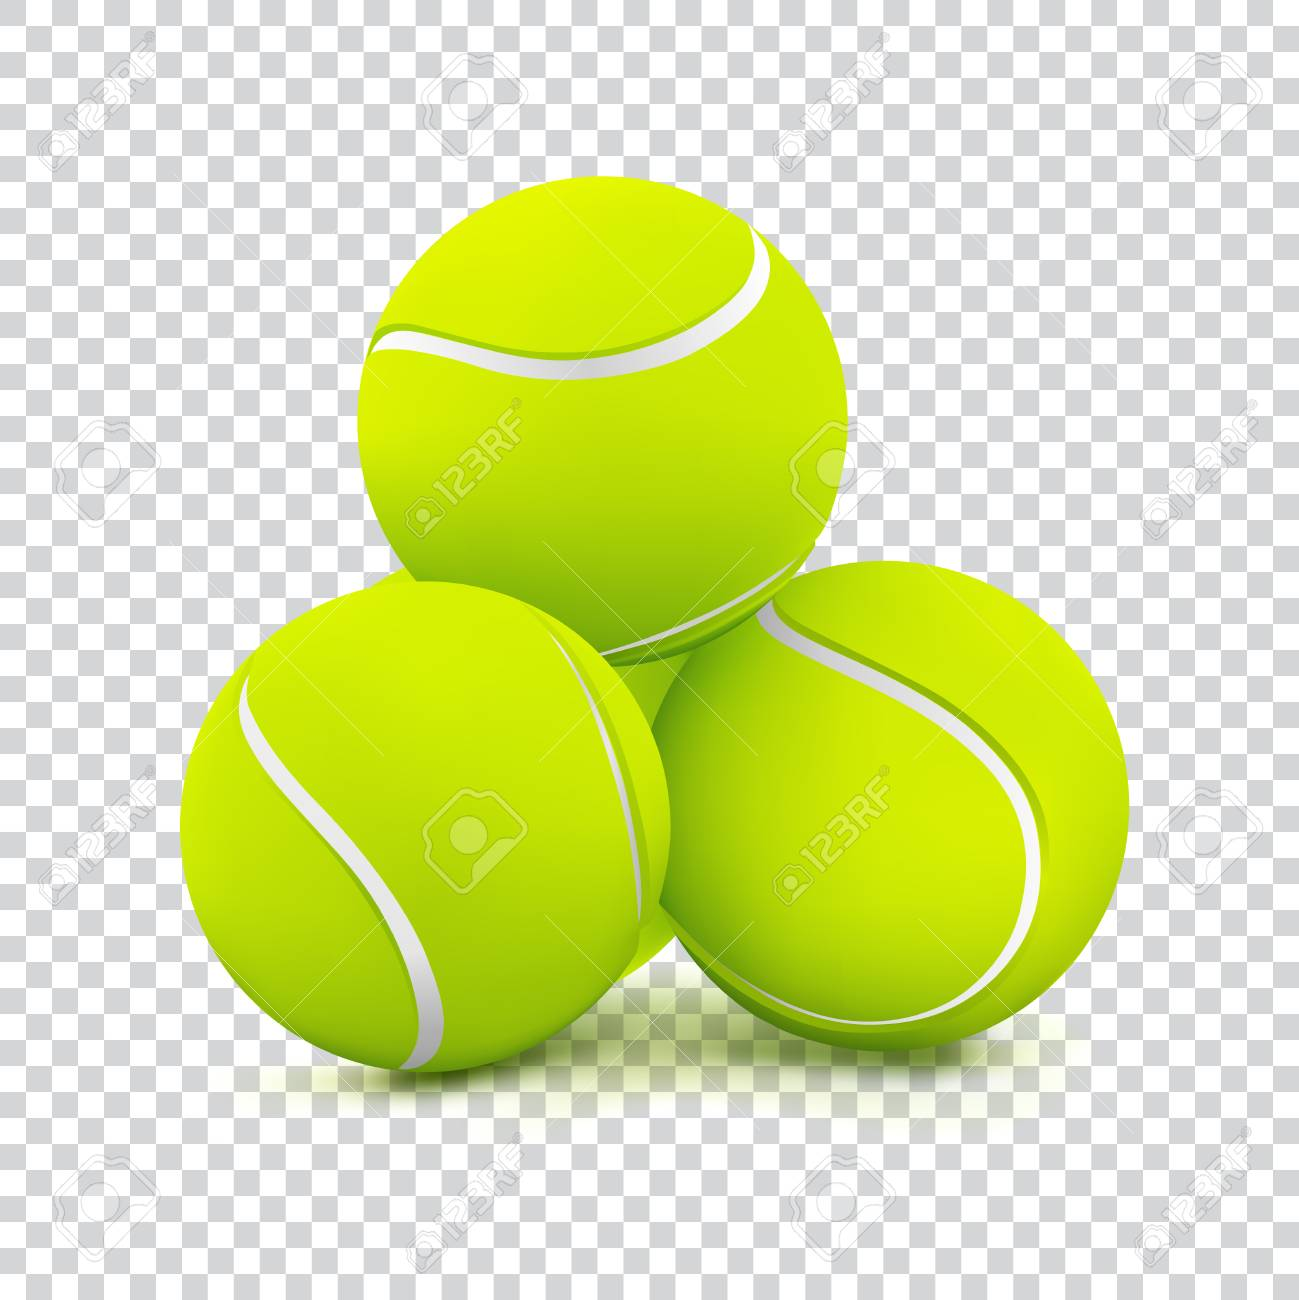 Tennis Balls On Transparent Background Royalty Free Cliparts Vectors And Stock Illustration Image 87271440